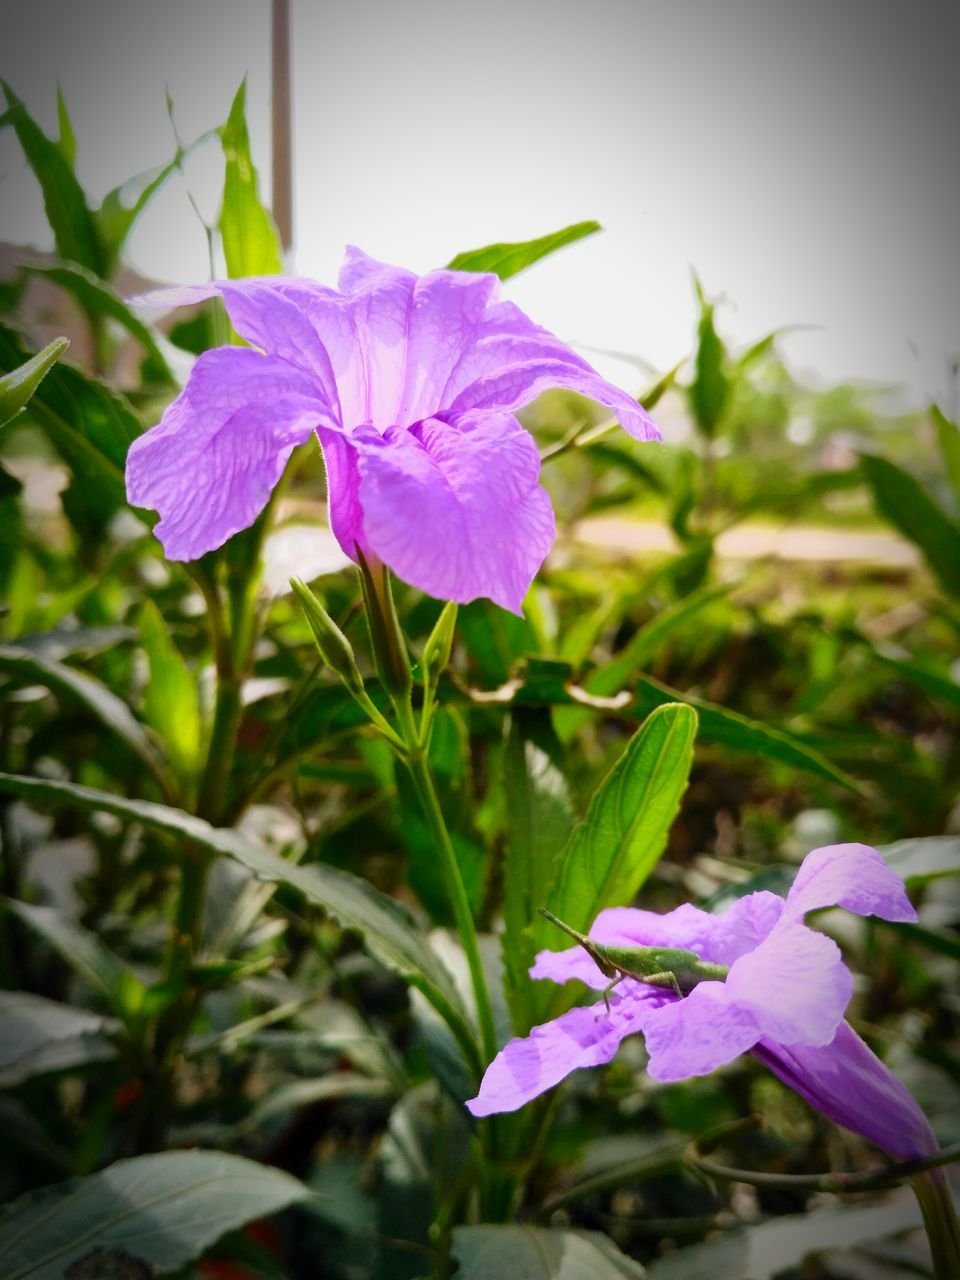 flower, petal, fragility, growth, freshness, purple, beauty in nature, flower head, nature, blooming, plant, day, close-up, outdoors, leaf, no people, petunia, periwinkle, crocus